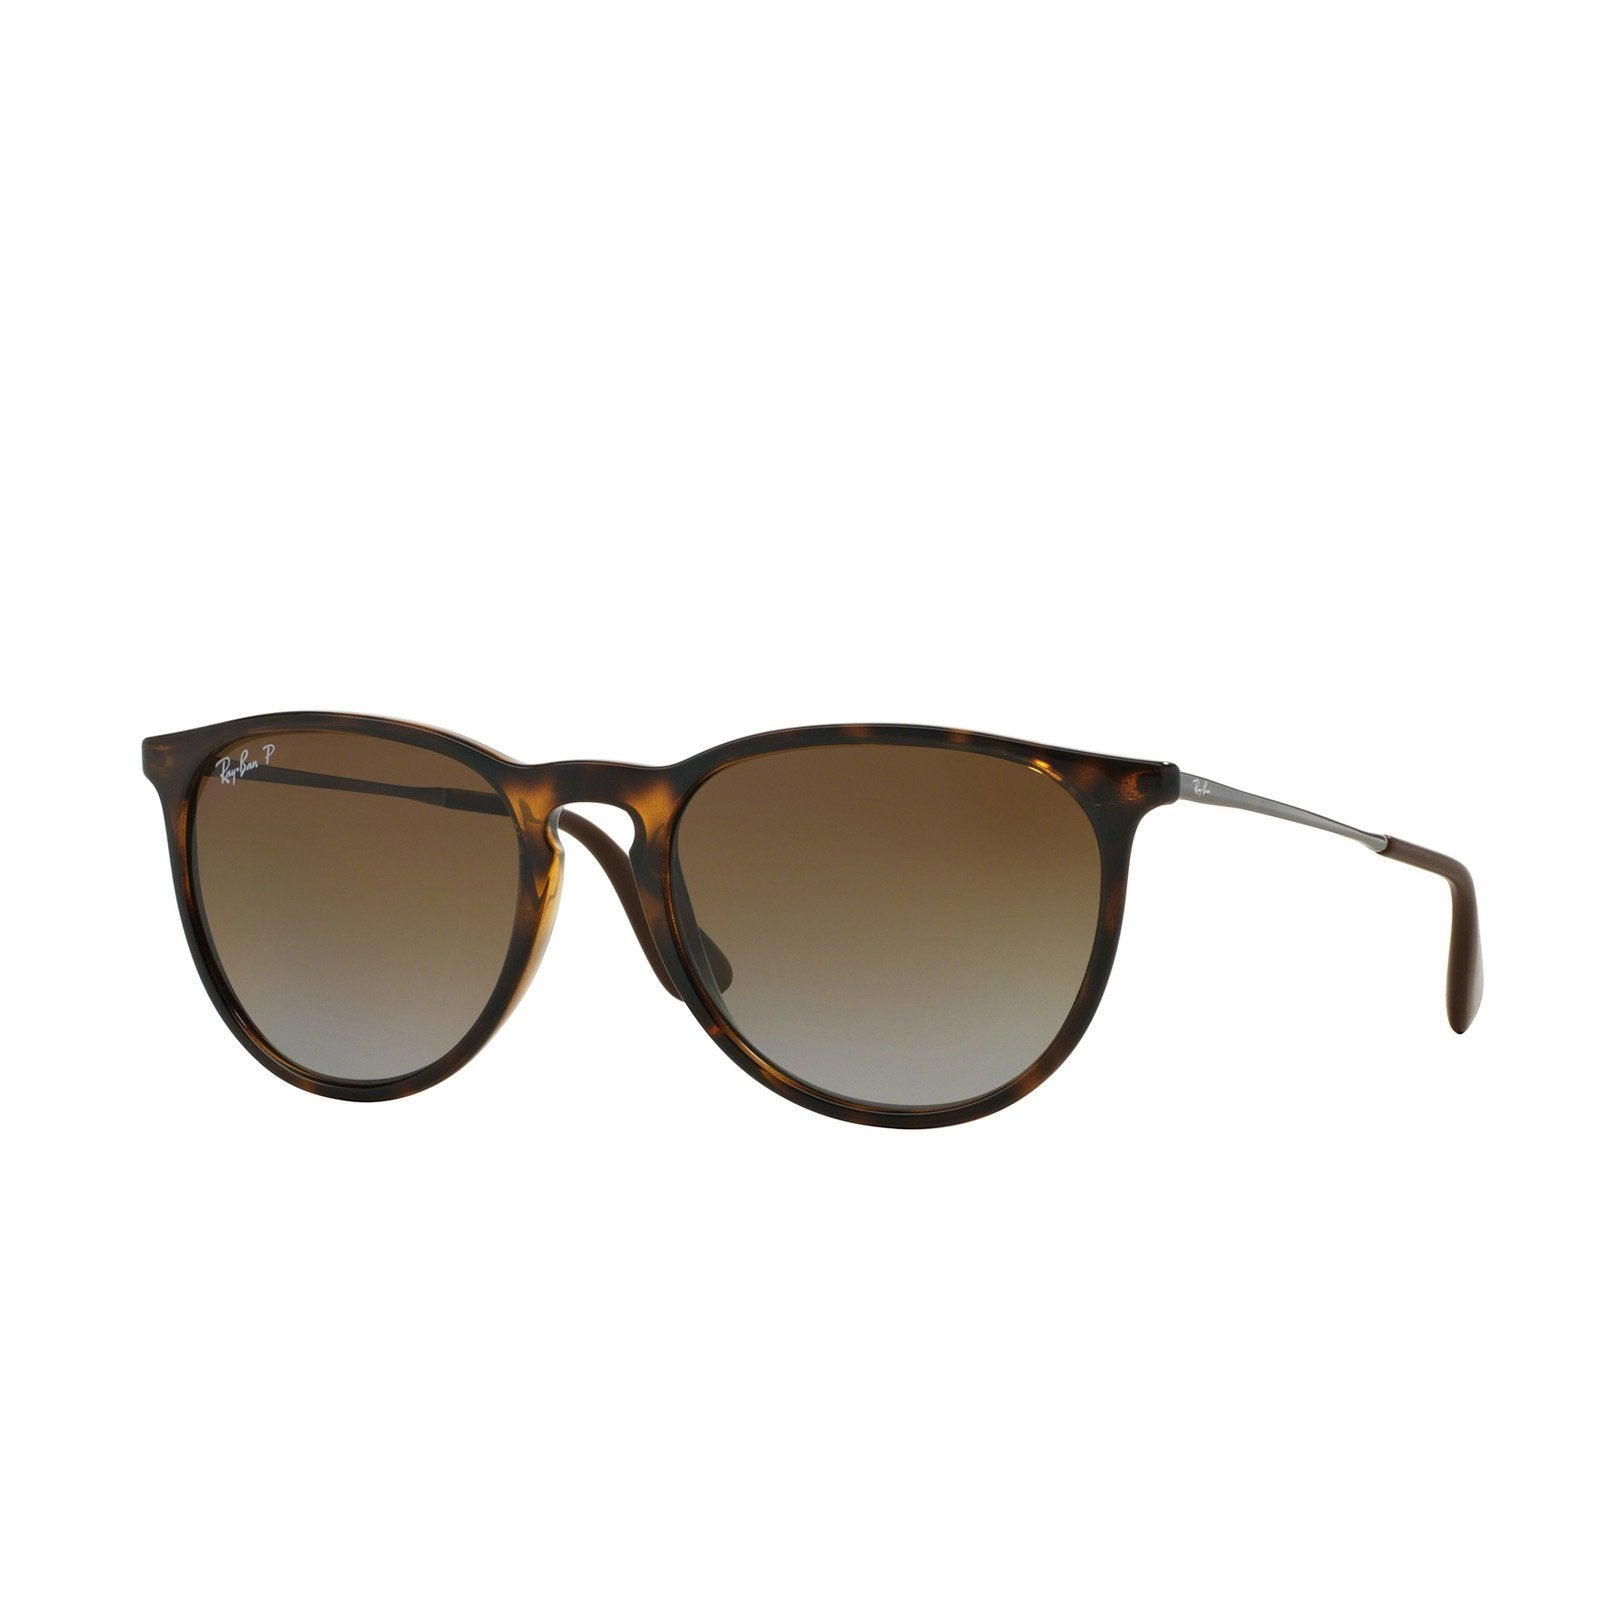 Ray-Ban RB4171 710/T5 Sunglasses